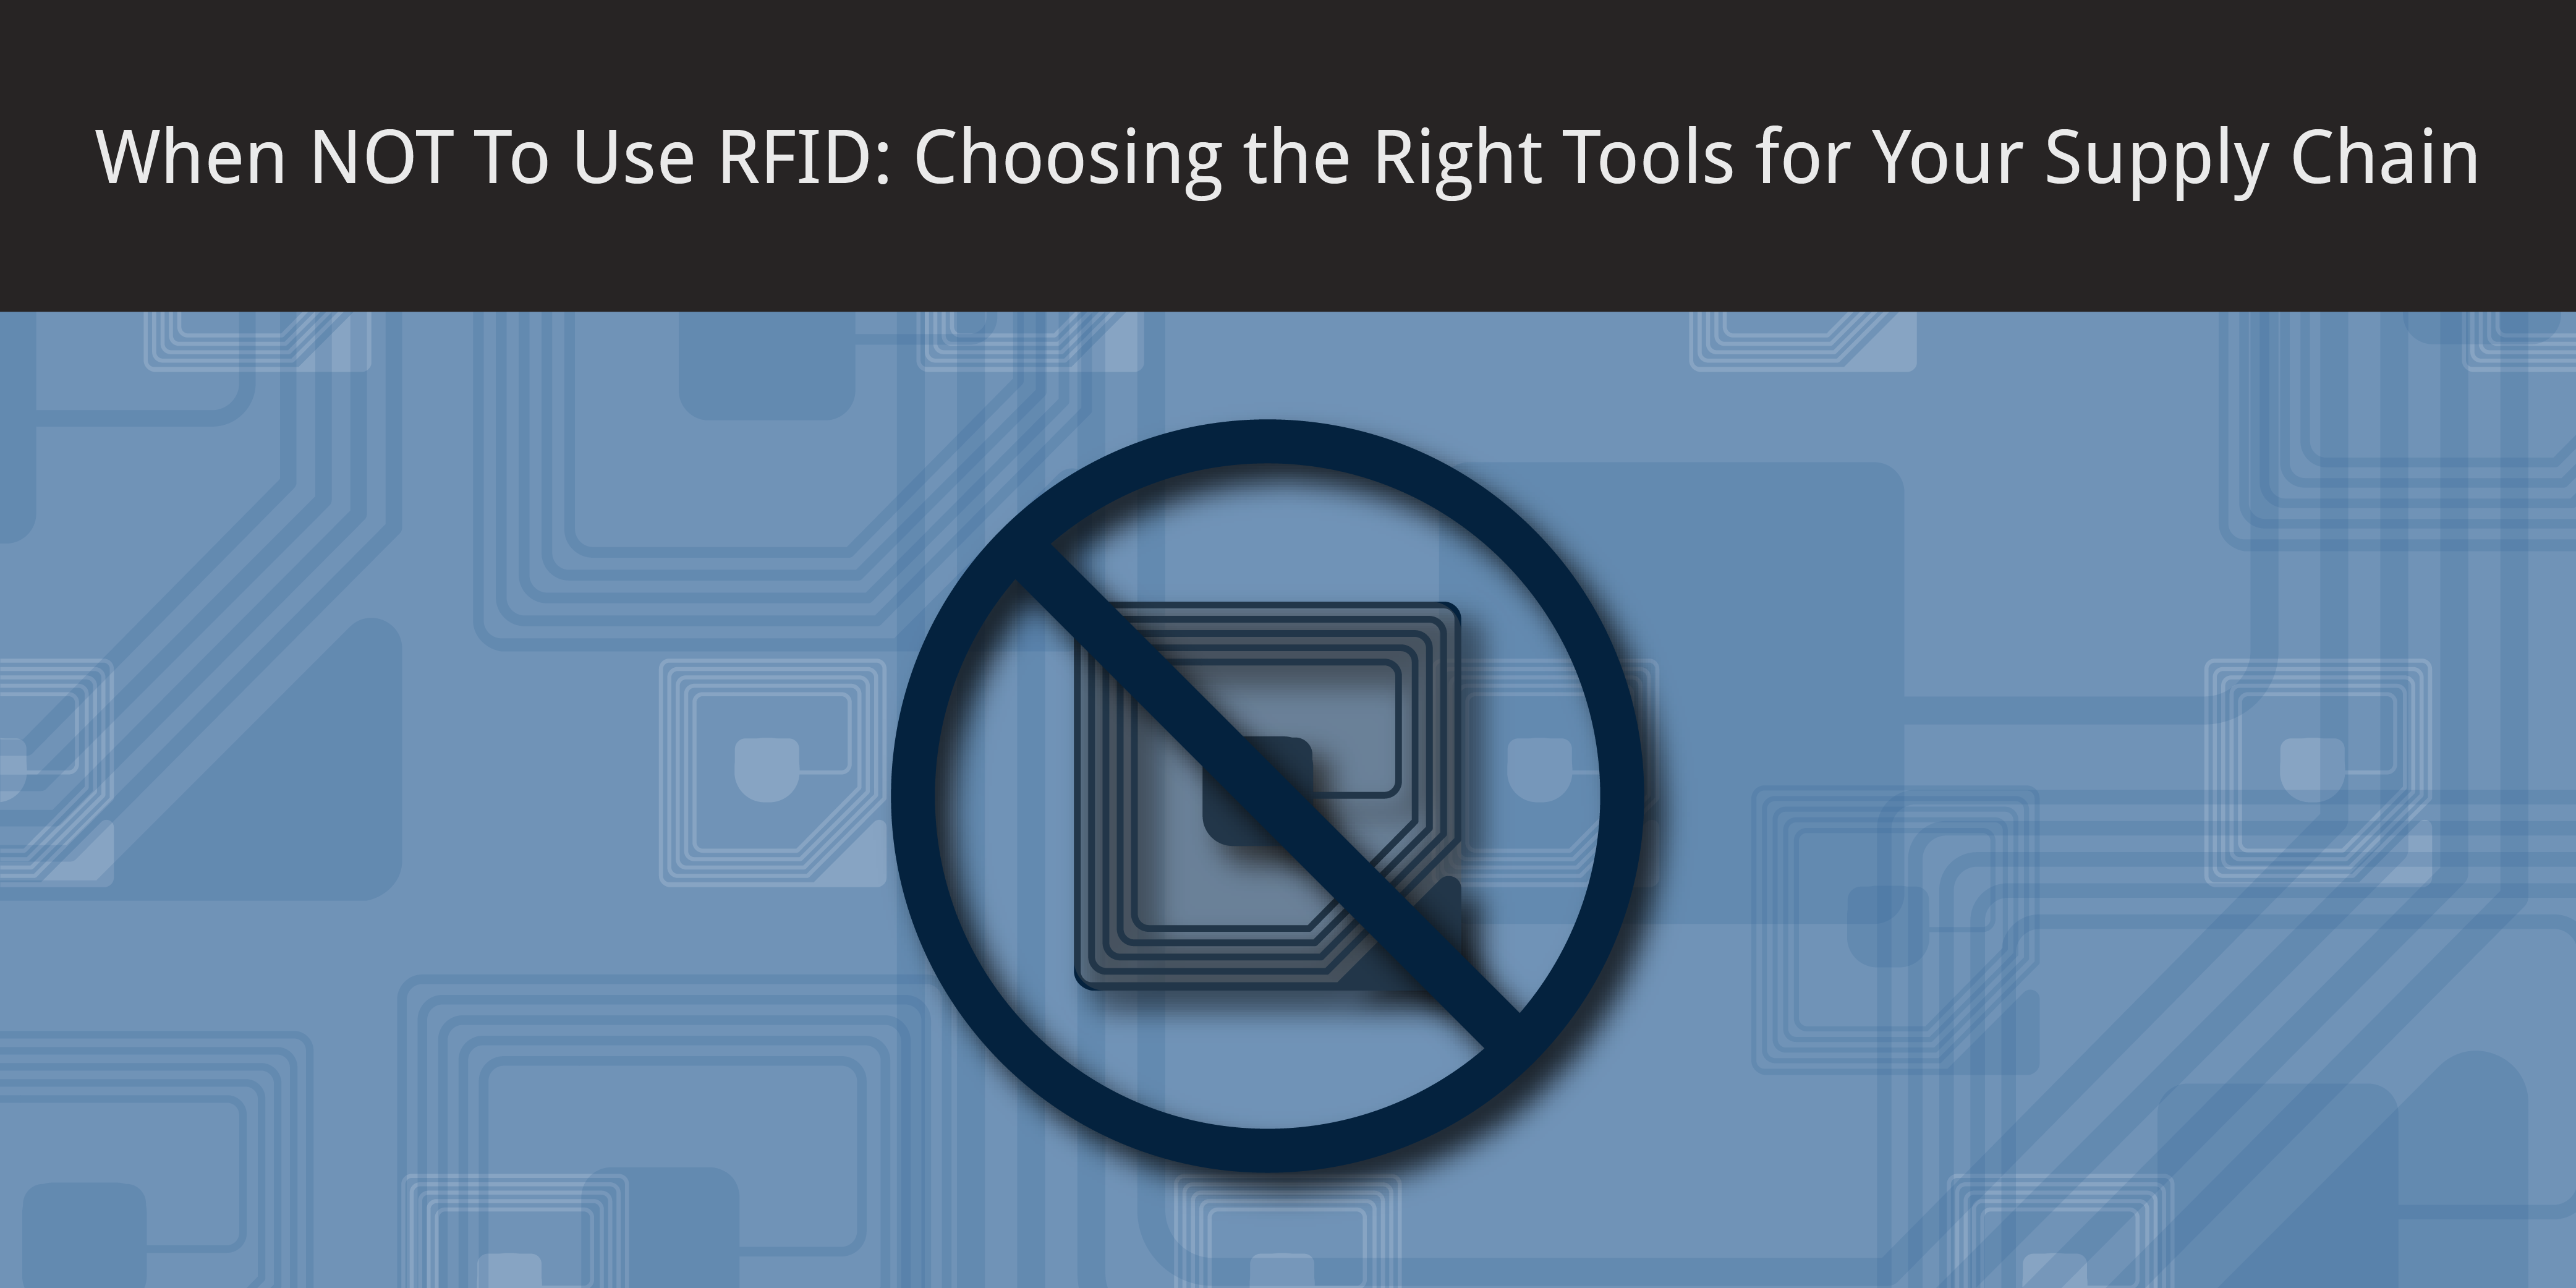 when not to use RFID scanning and how to choose the right tools